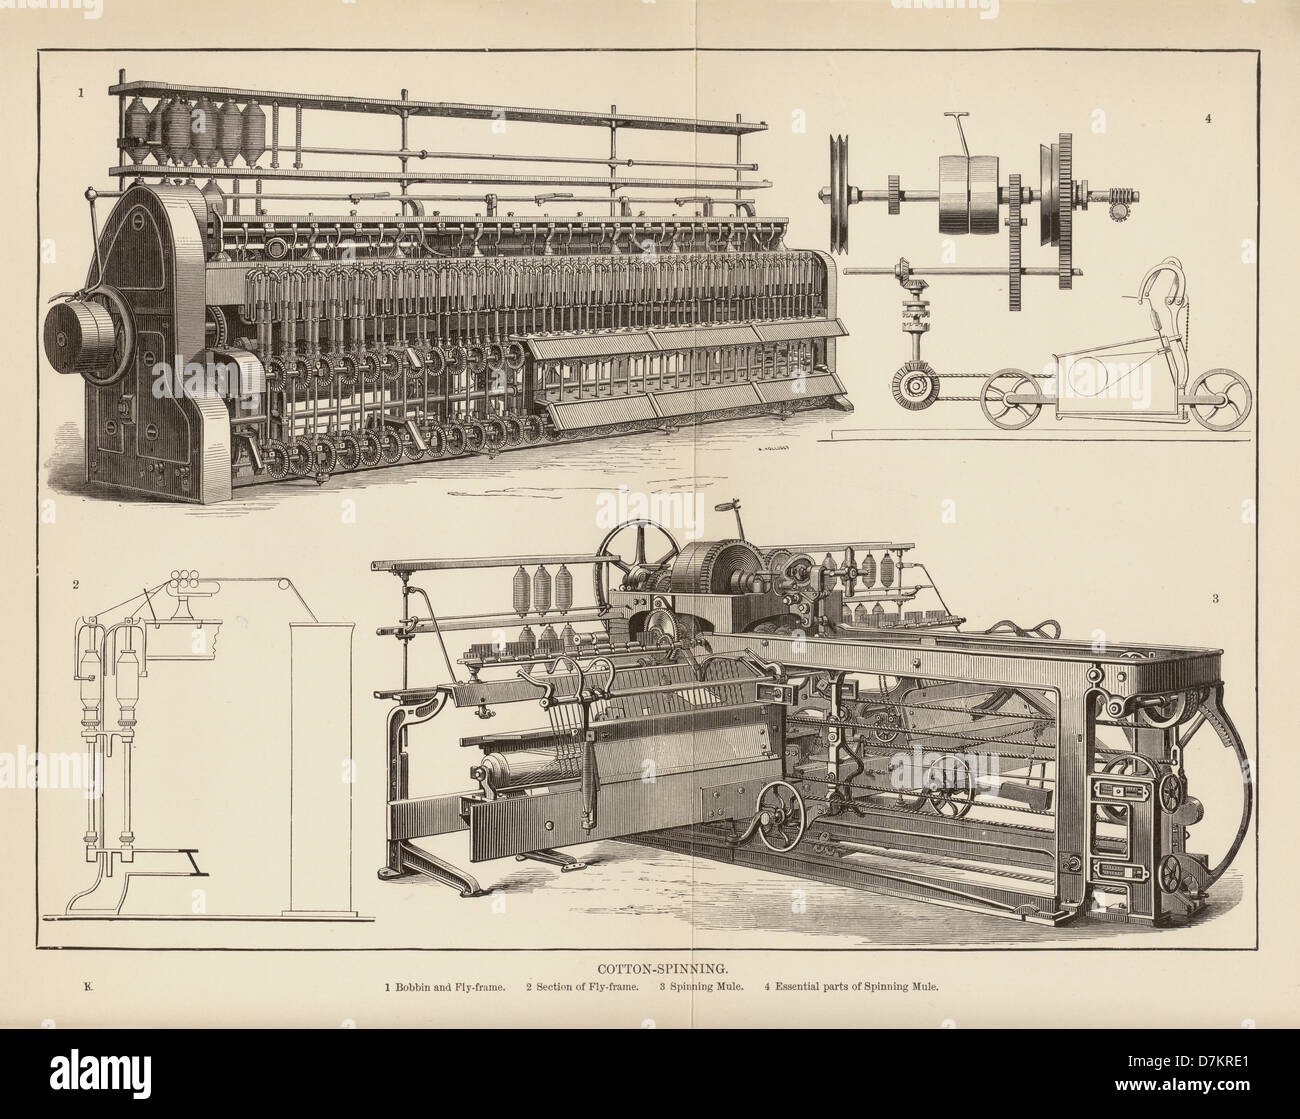 An engraved Illustration of cotton spinning, depicting Bobbin, Fly-frame and Spinning Mule machines circa 1890, - Stock Image